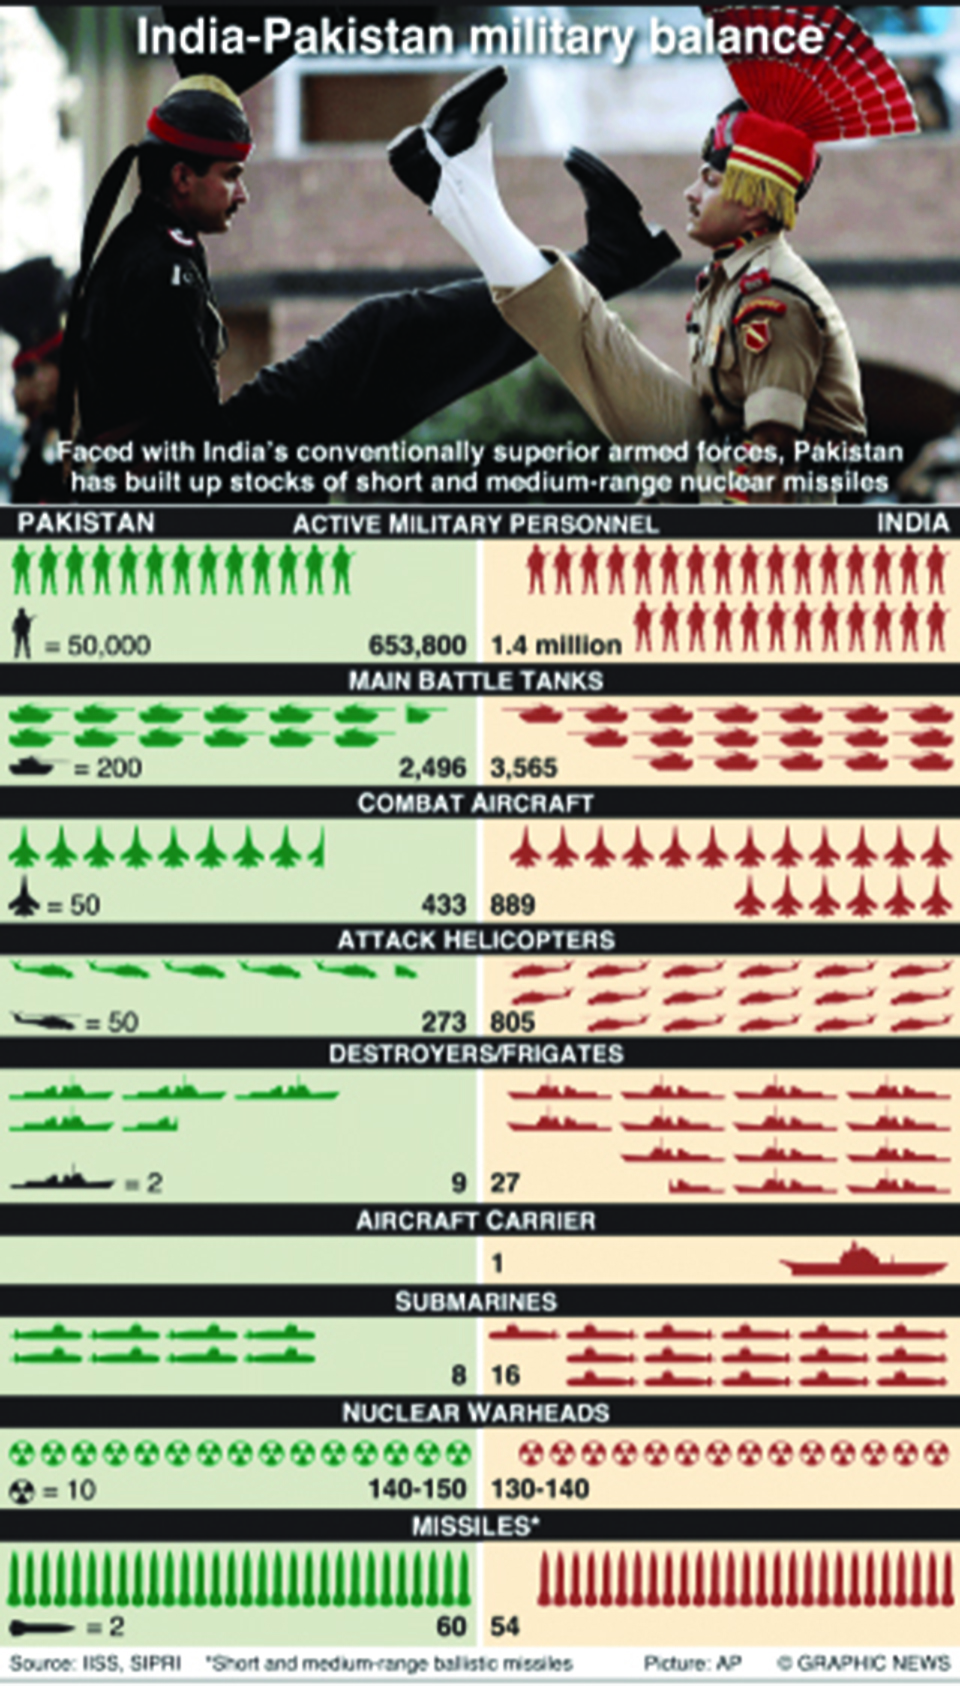 Infographic: India and Pakistan military strength compared